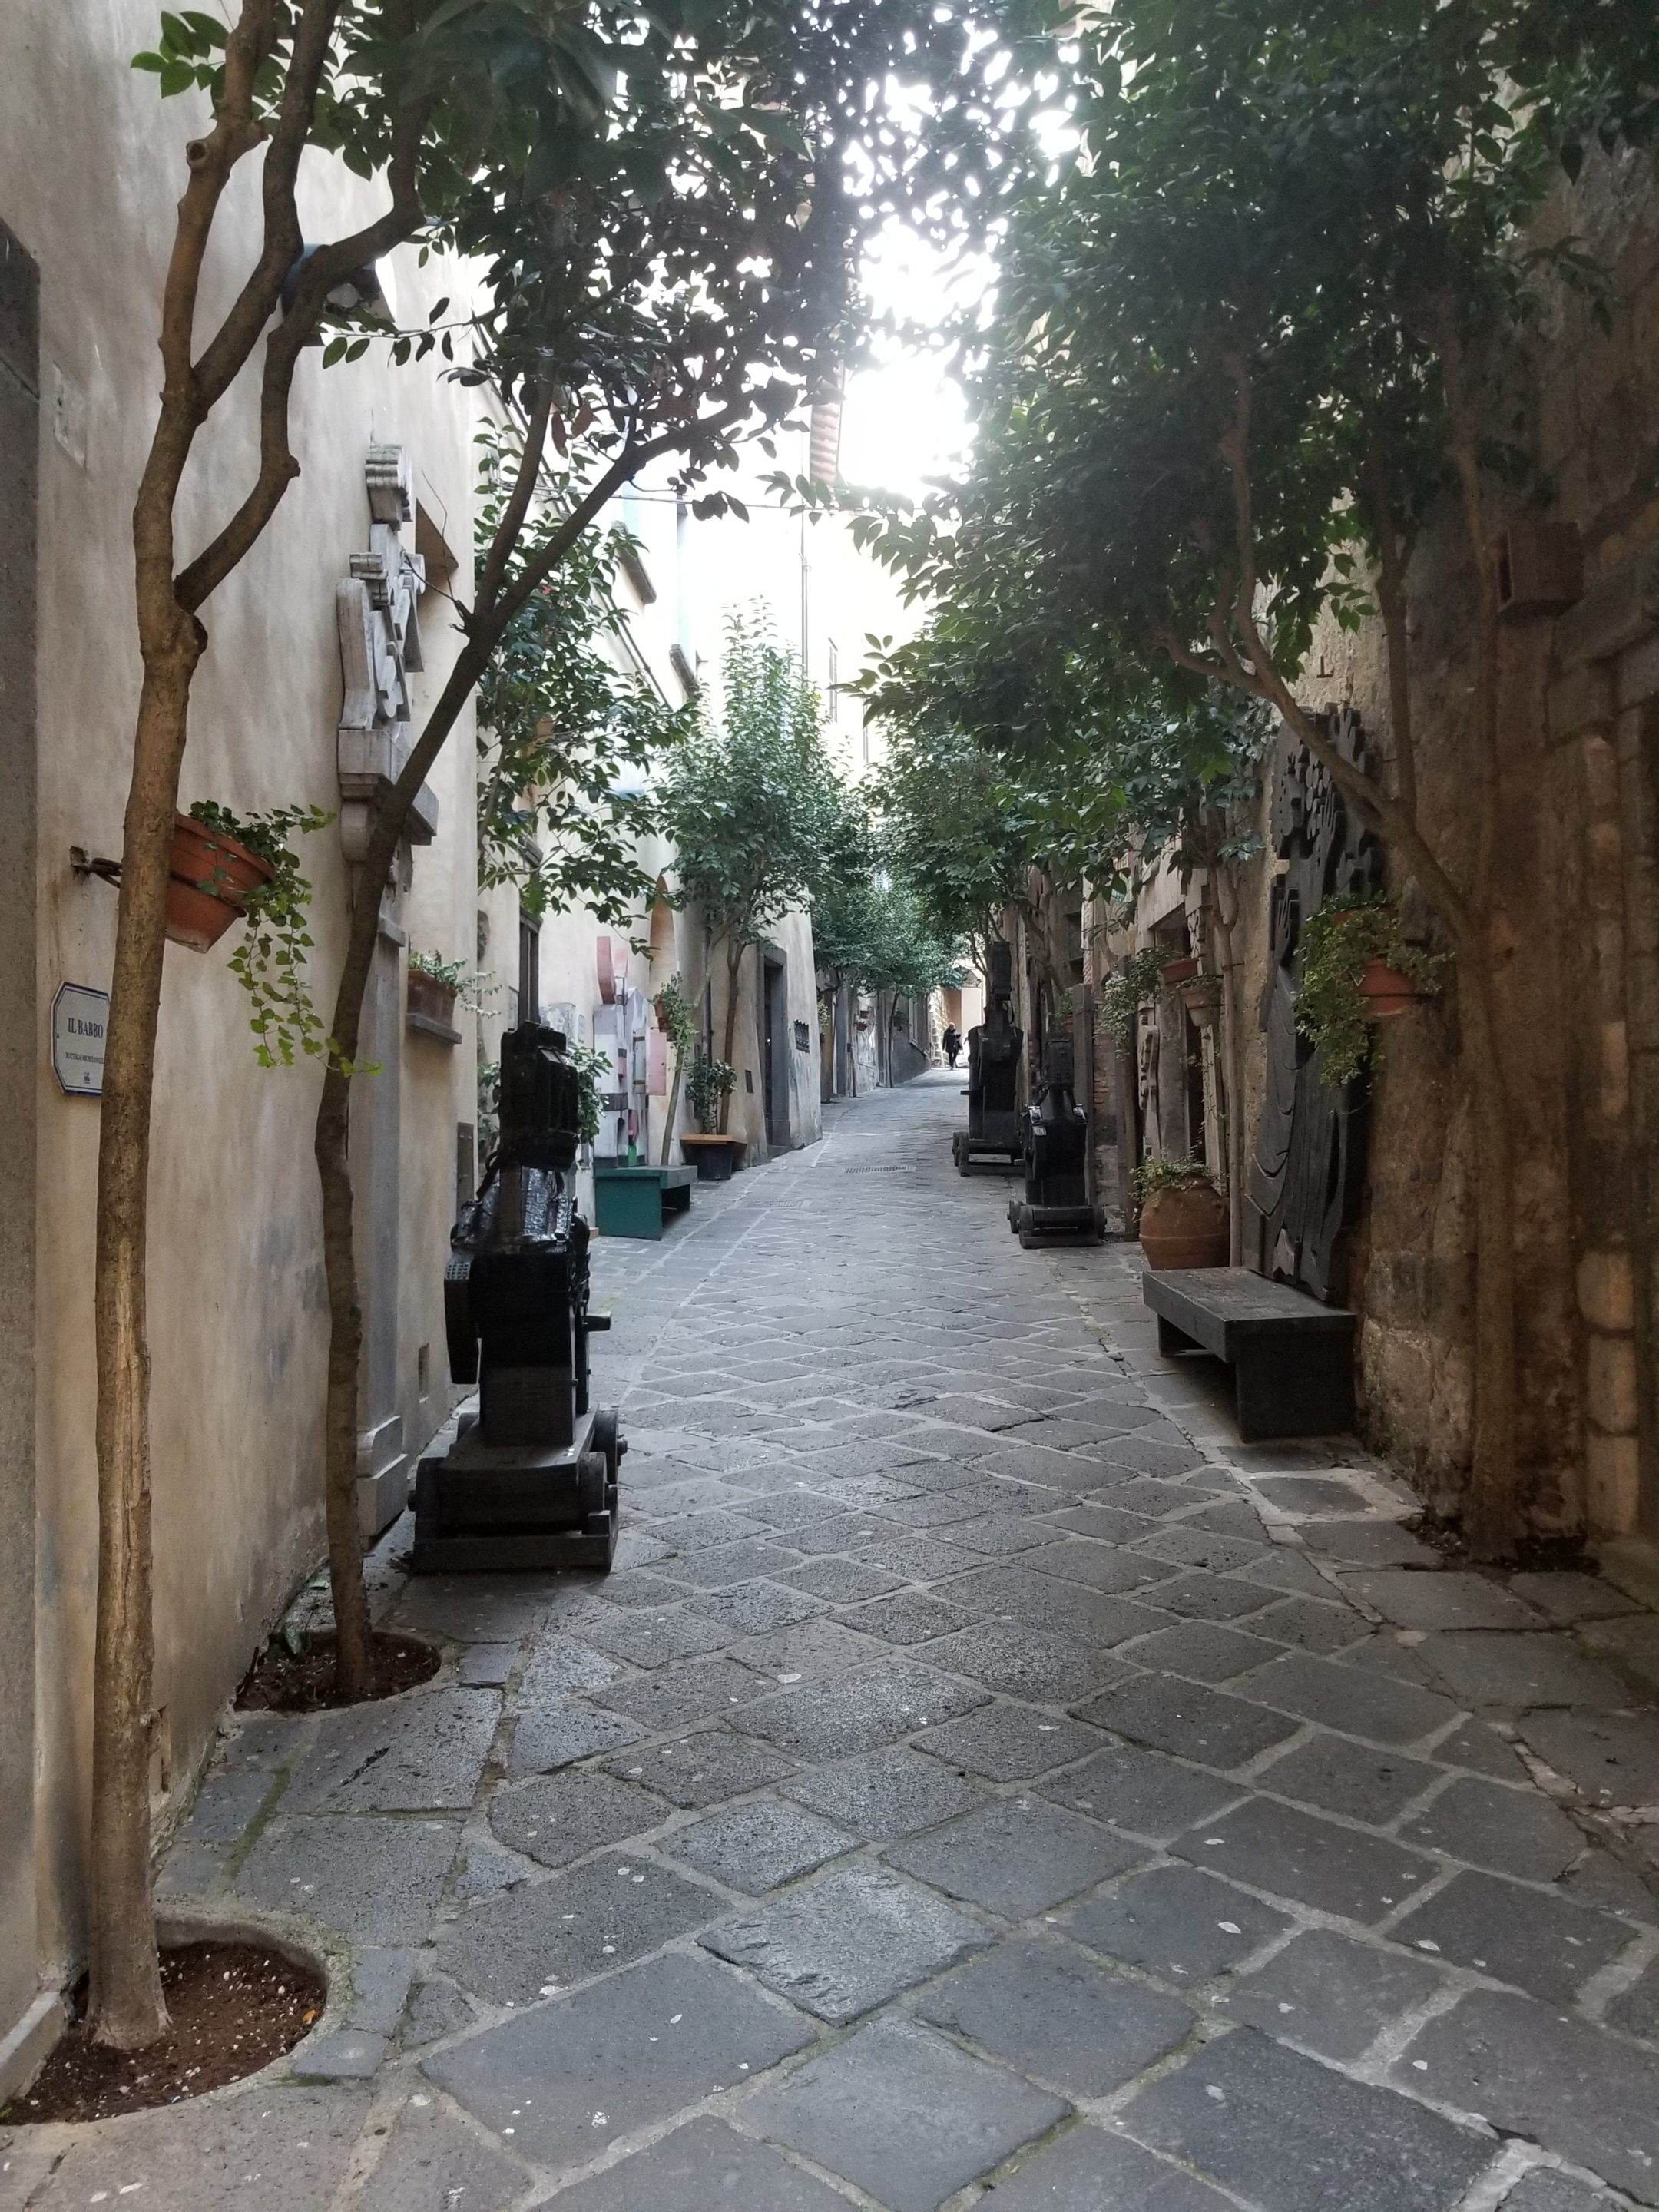 Discover the old Etruscan city and its hidden treasures in Orvieto, ouritalianjourney.com